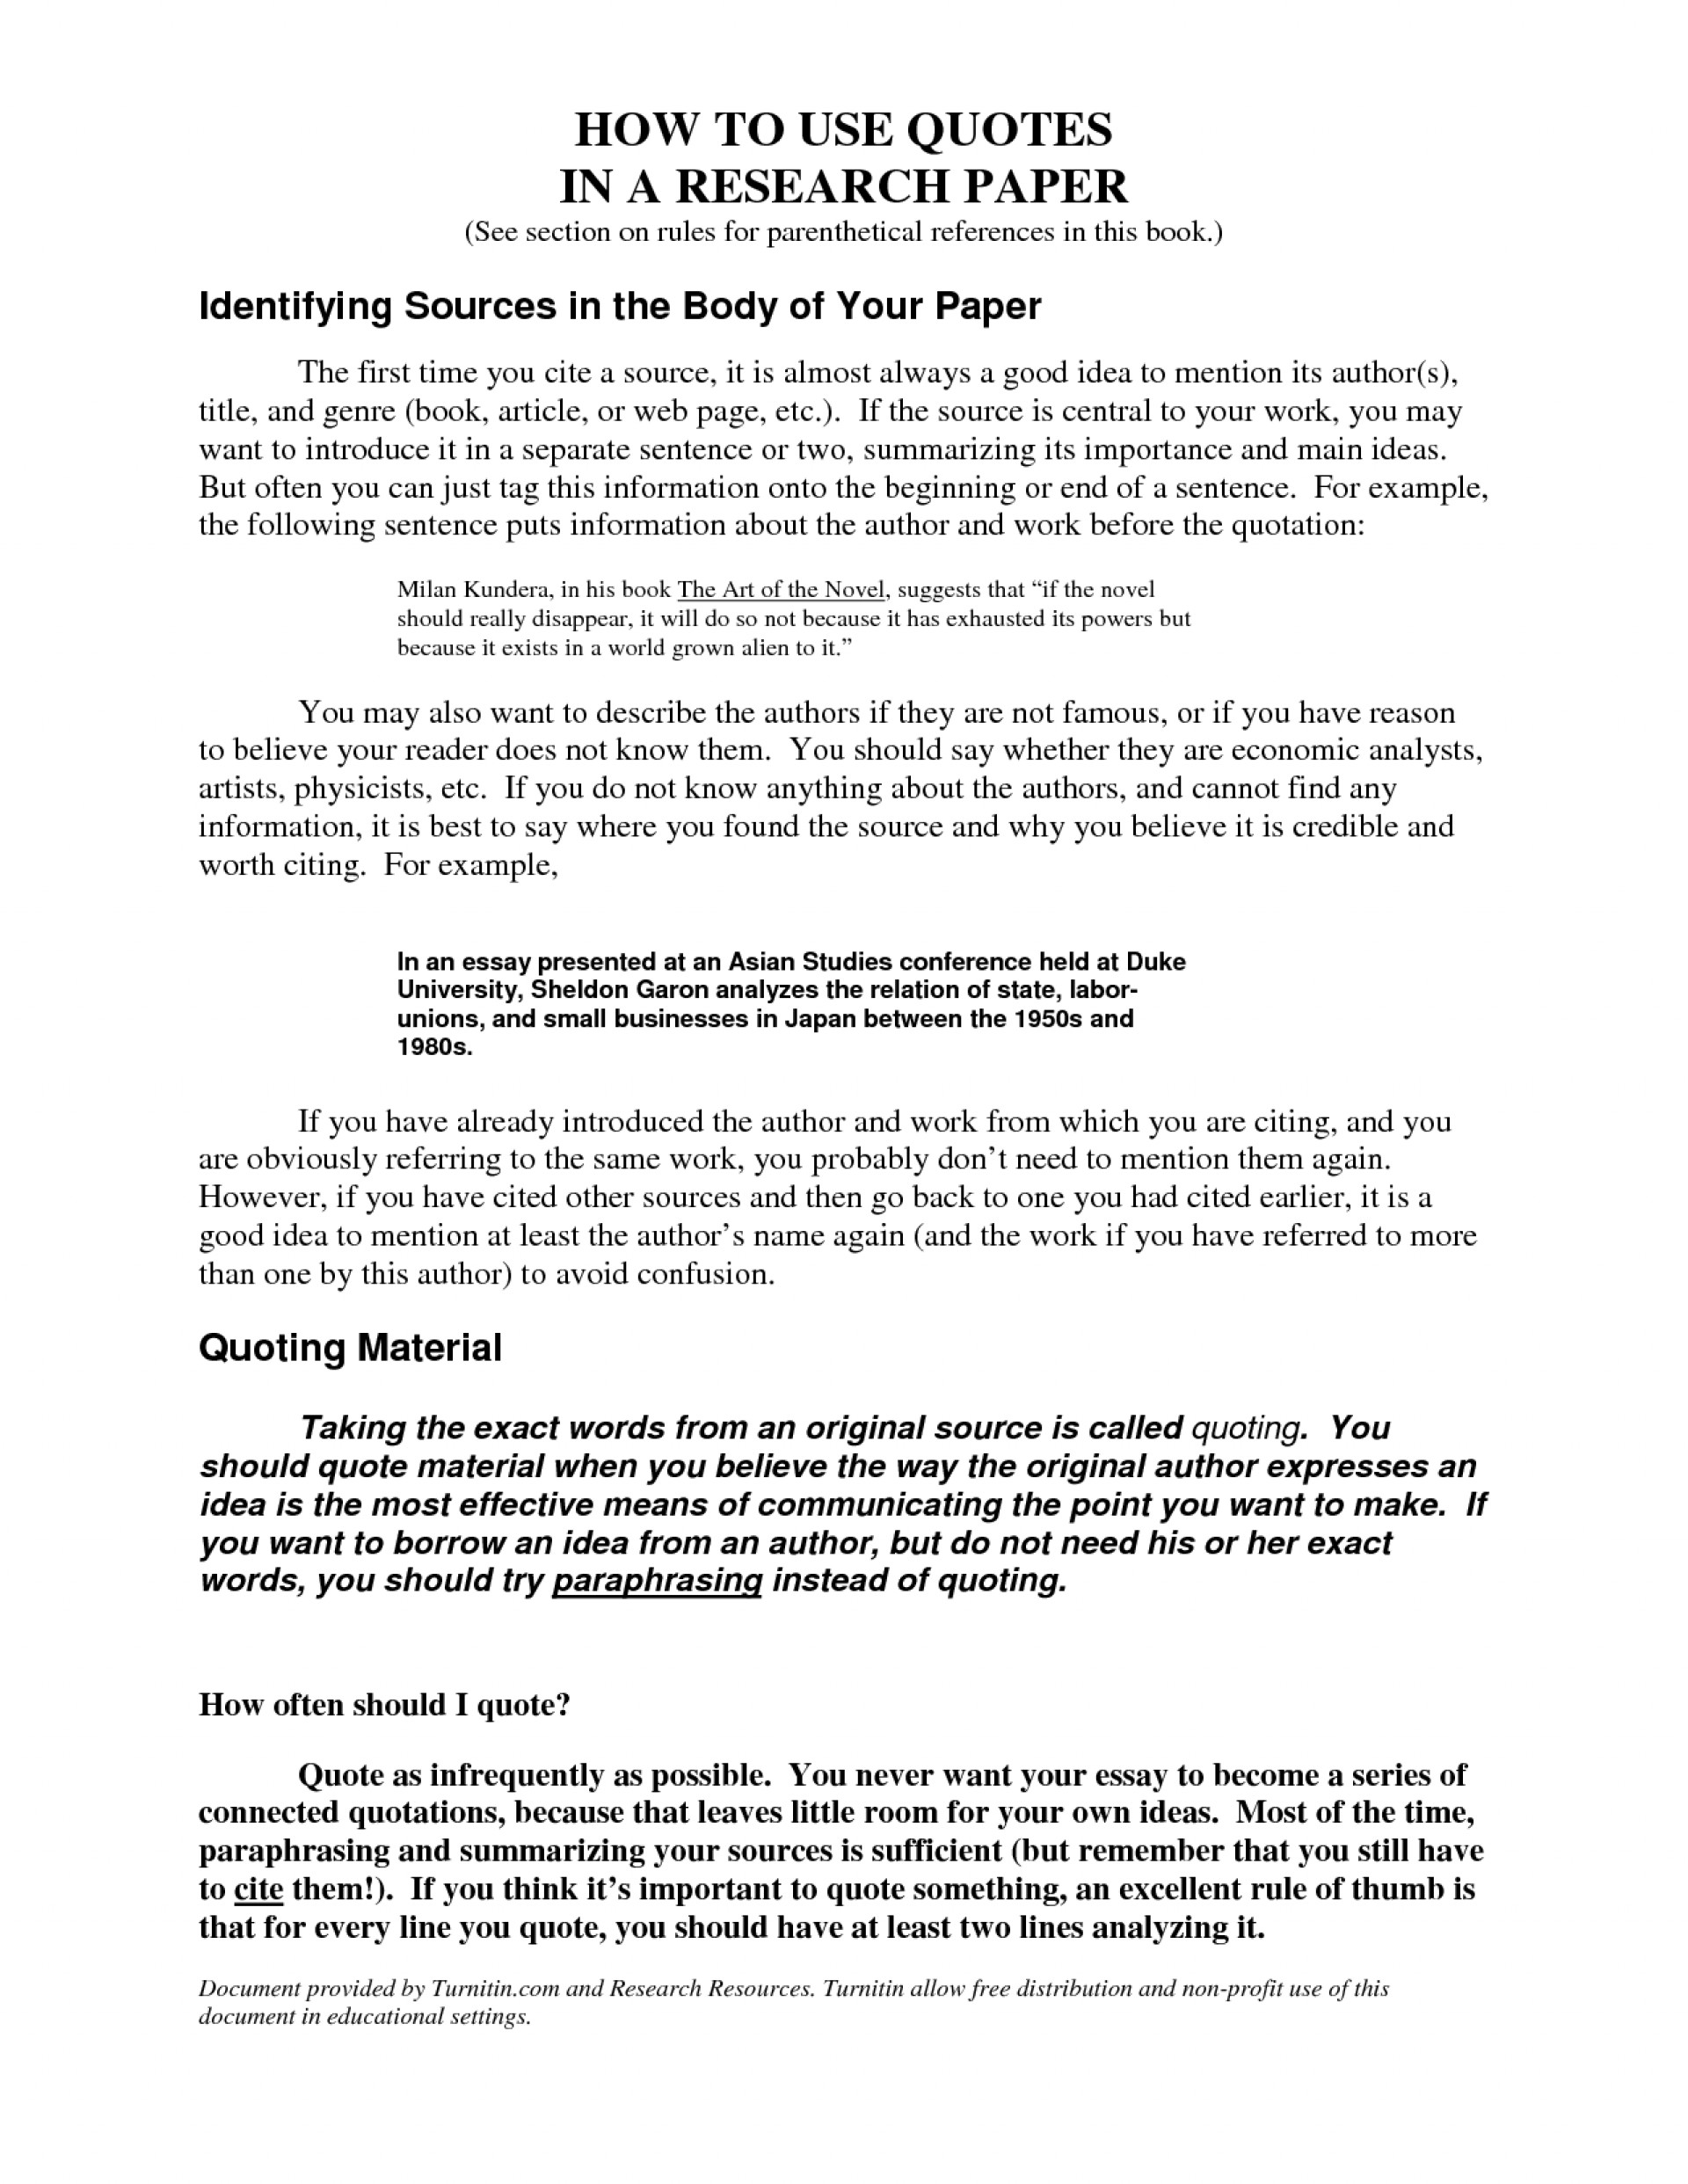 003 Essay Example Best Solutions Of Writing Quotes In Essays Marvelous Embedding On Quotestopics How To Put Remarkable An A Quote Apa Format 1920